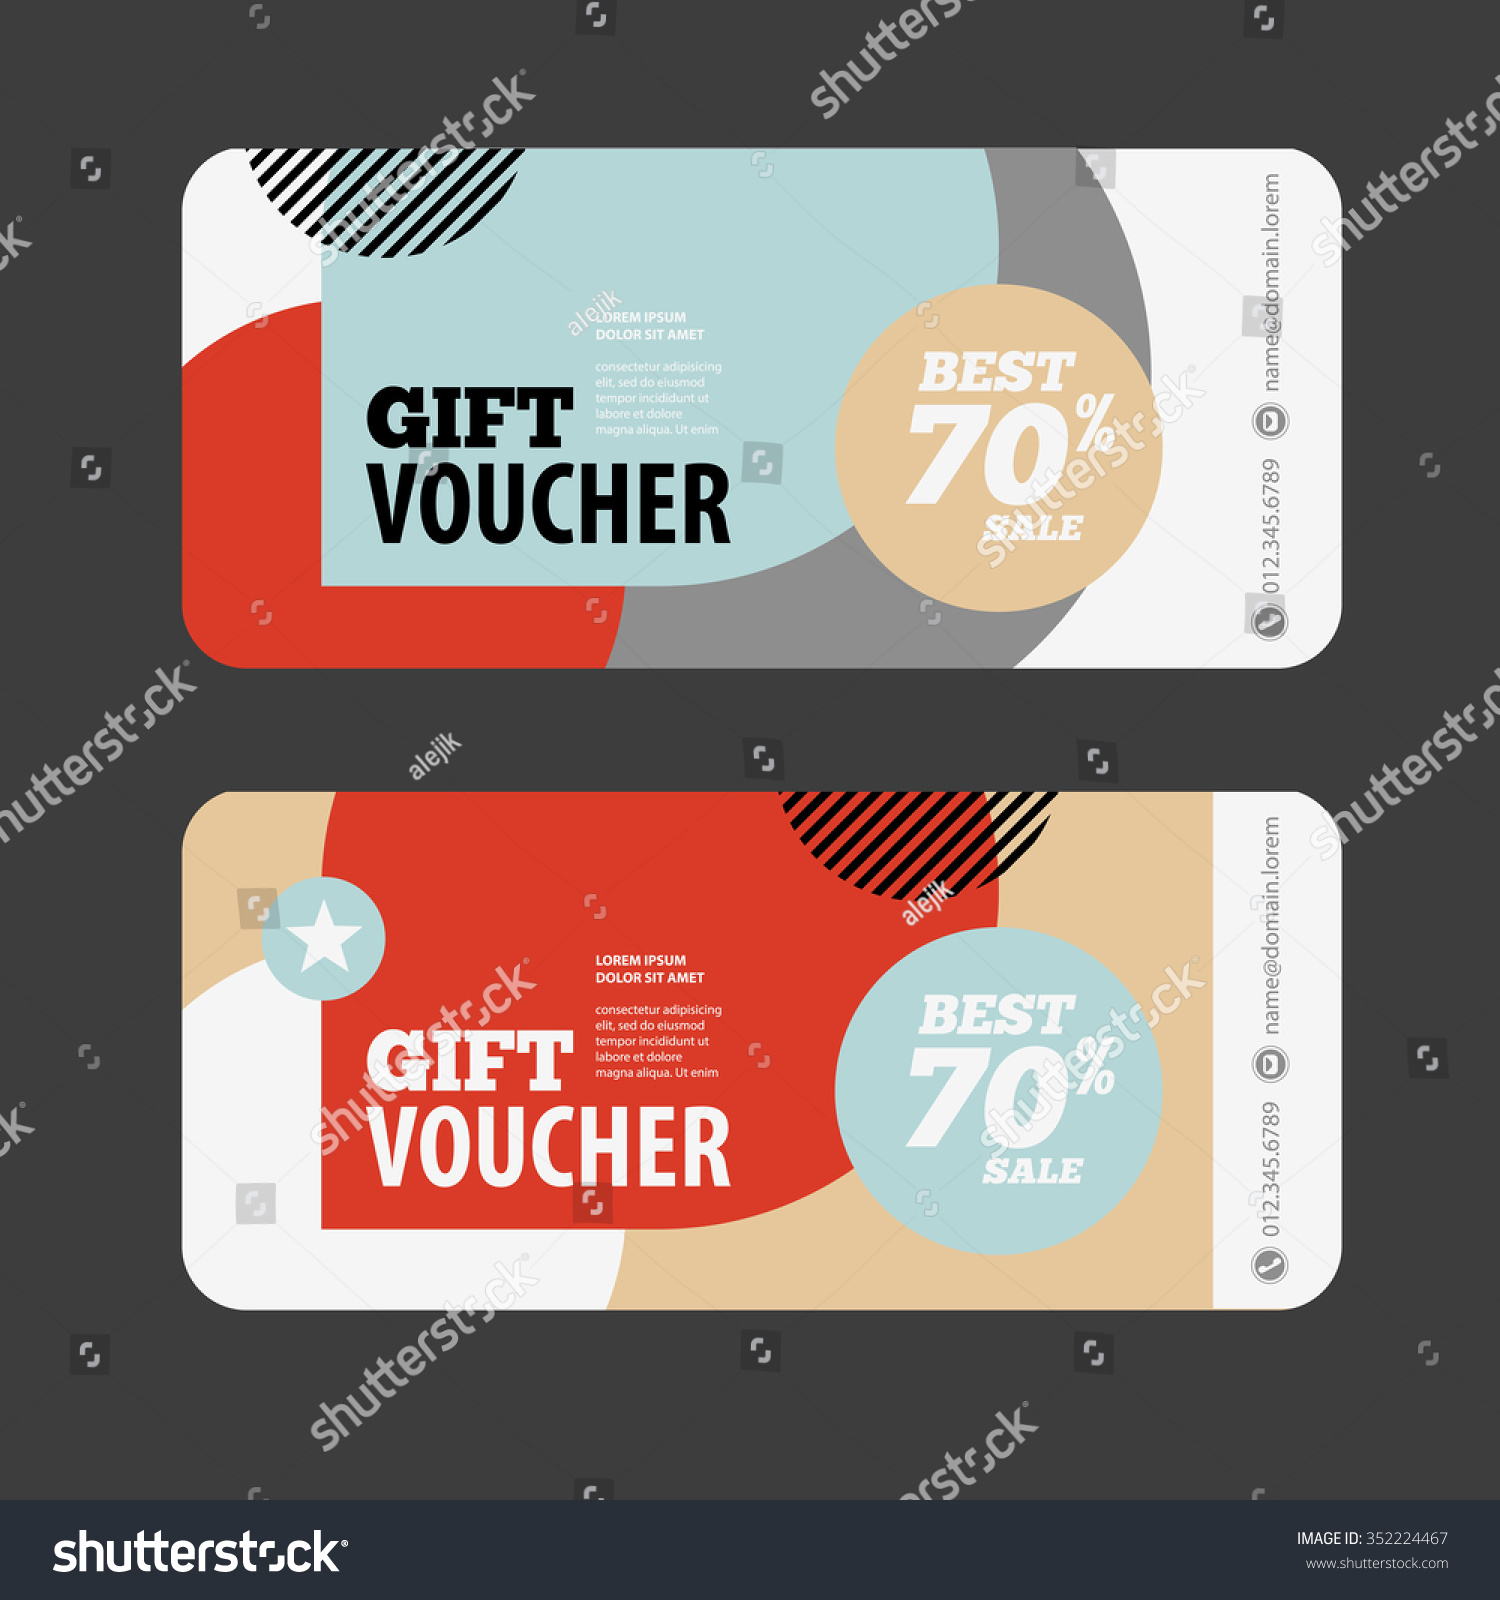 abstract gift voucher coupon design template stock vector abstract gift voucher or coupon design template voucher design blank print design